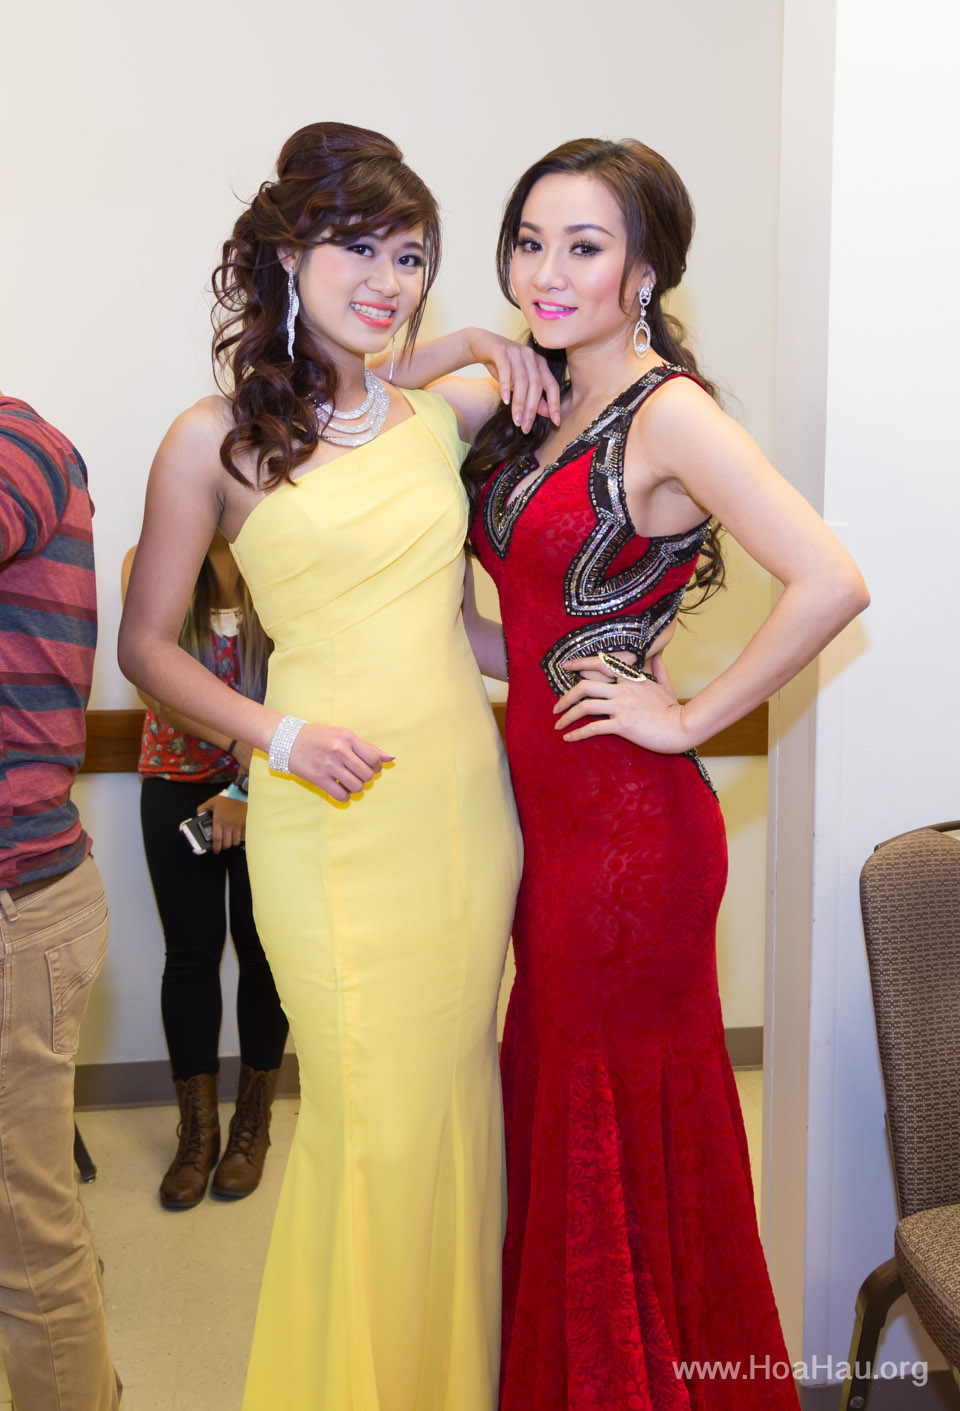 Miss Vietnam of Northern California 2014 - Hoa Hau Ao Dai Bac Cali 2014 - Behind the Scenes - Image 271